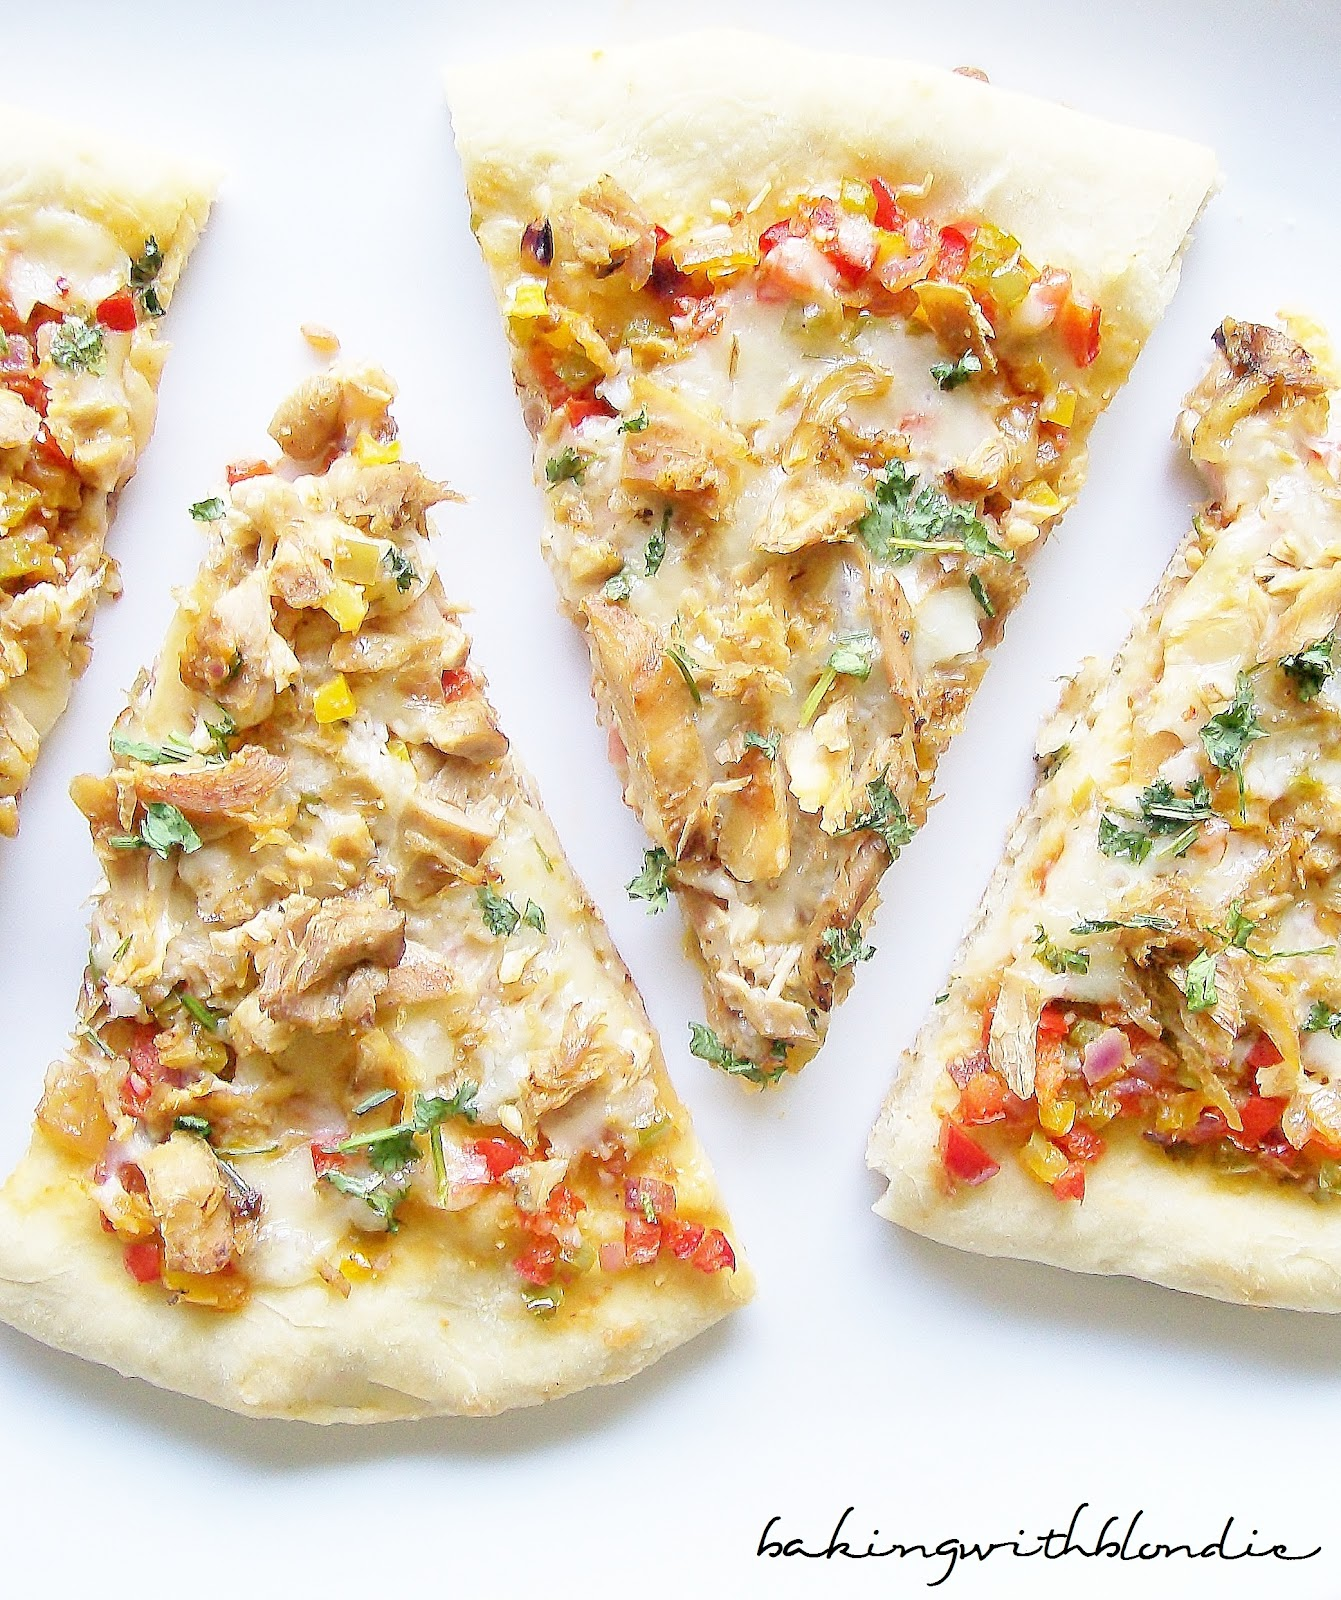 Baking with Blondie : Spicy Chicken Pizza with Pepper Jack Cheese and ...